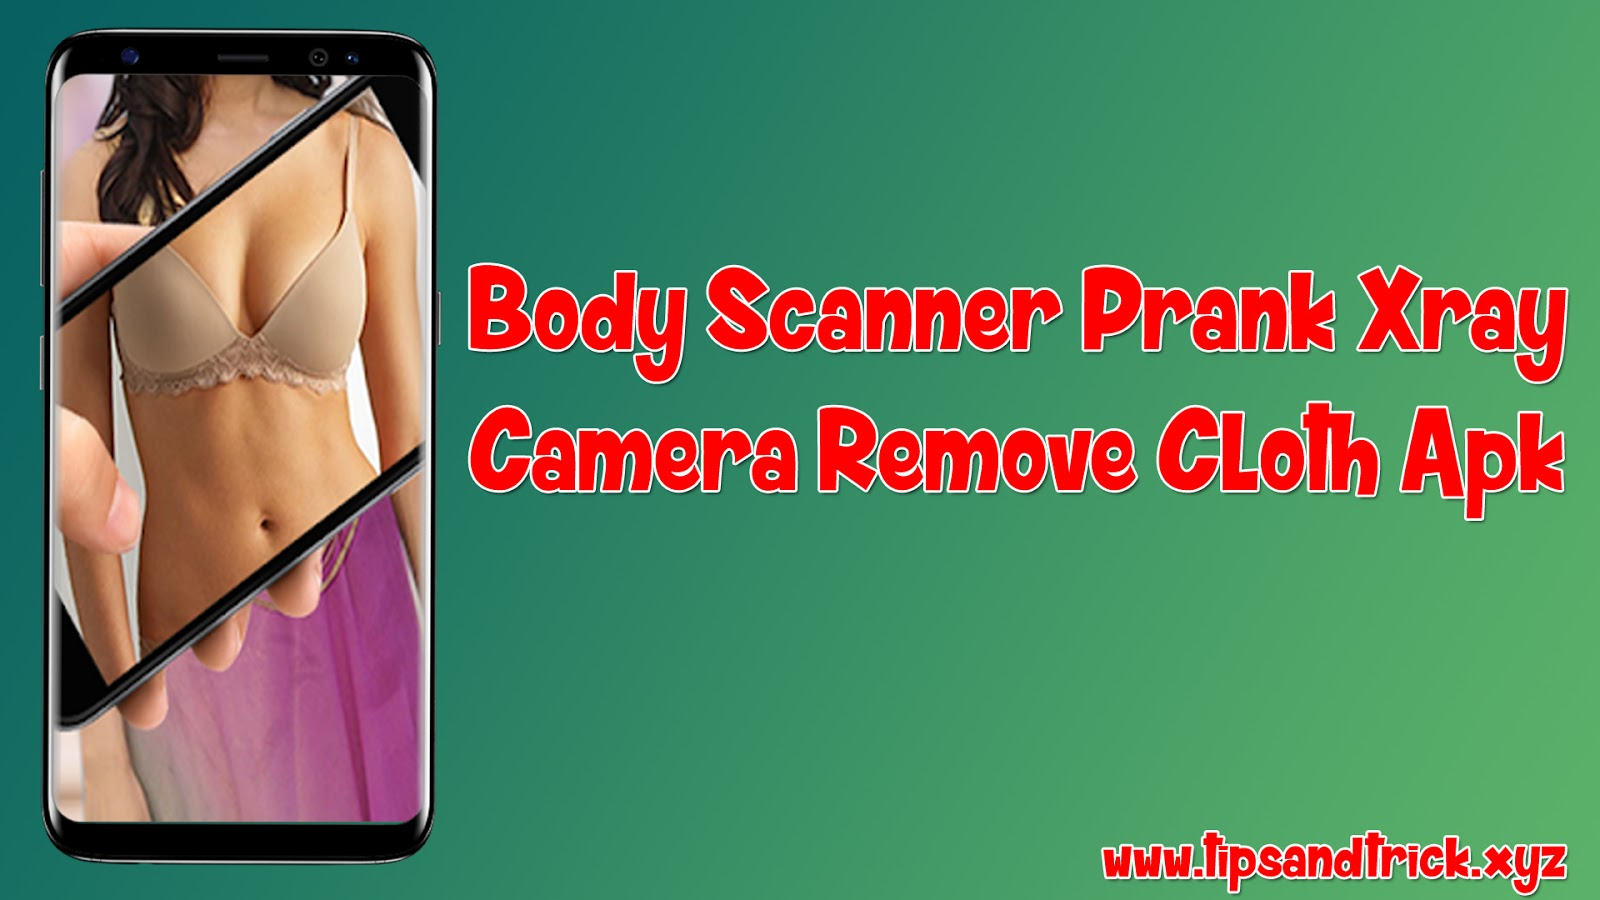 Body Scanner Prank Xray Camera Remove Cloth Apk Download Tips And